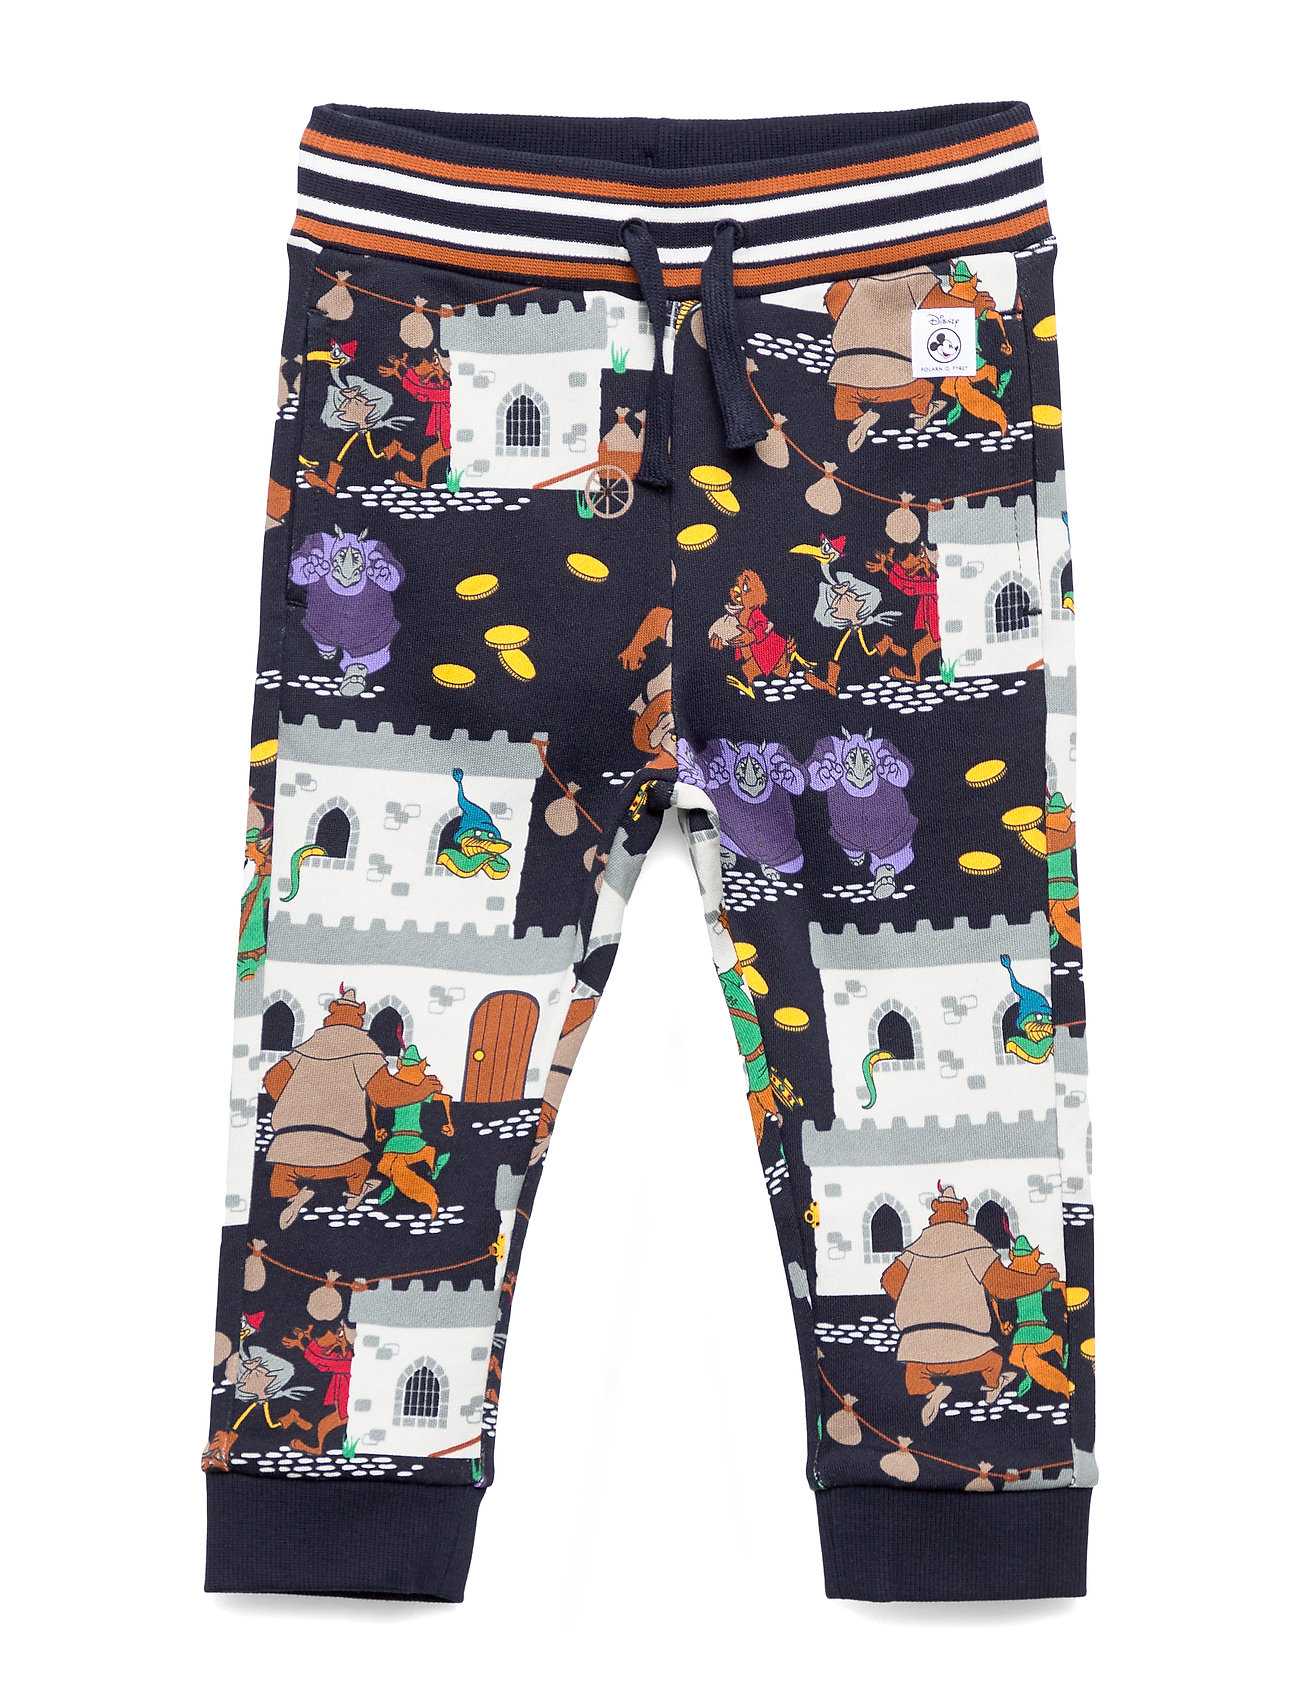 Image of Disney Collection Trousers Jersey Aop Preschool Sweatpants Hyggebukser Multi/mønstret Polarn O. Pyret (3266176851)